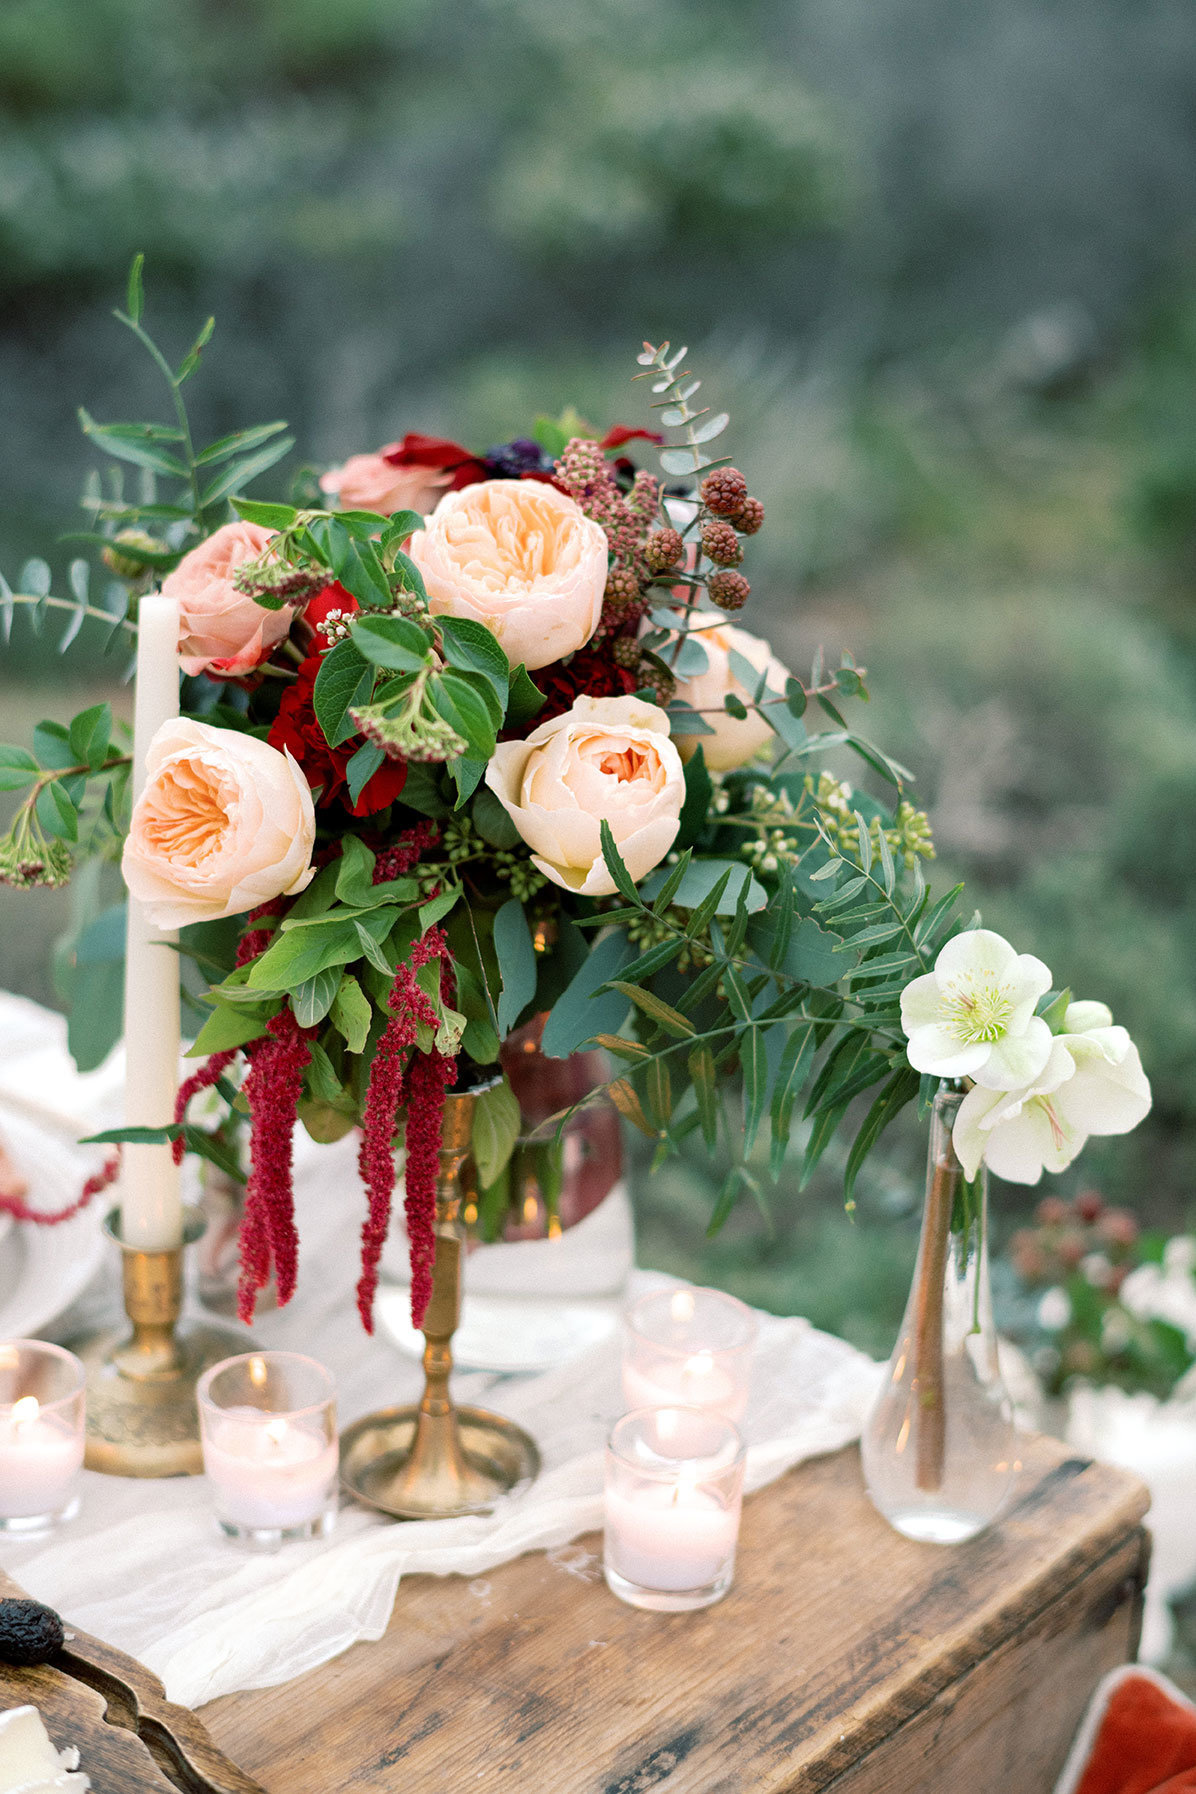 Montana-de-Oro-Elopement-styled-by-San-Luis-Obispo-Wedding-Planner-Embark-Event-Design-20